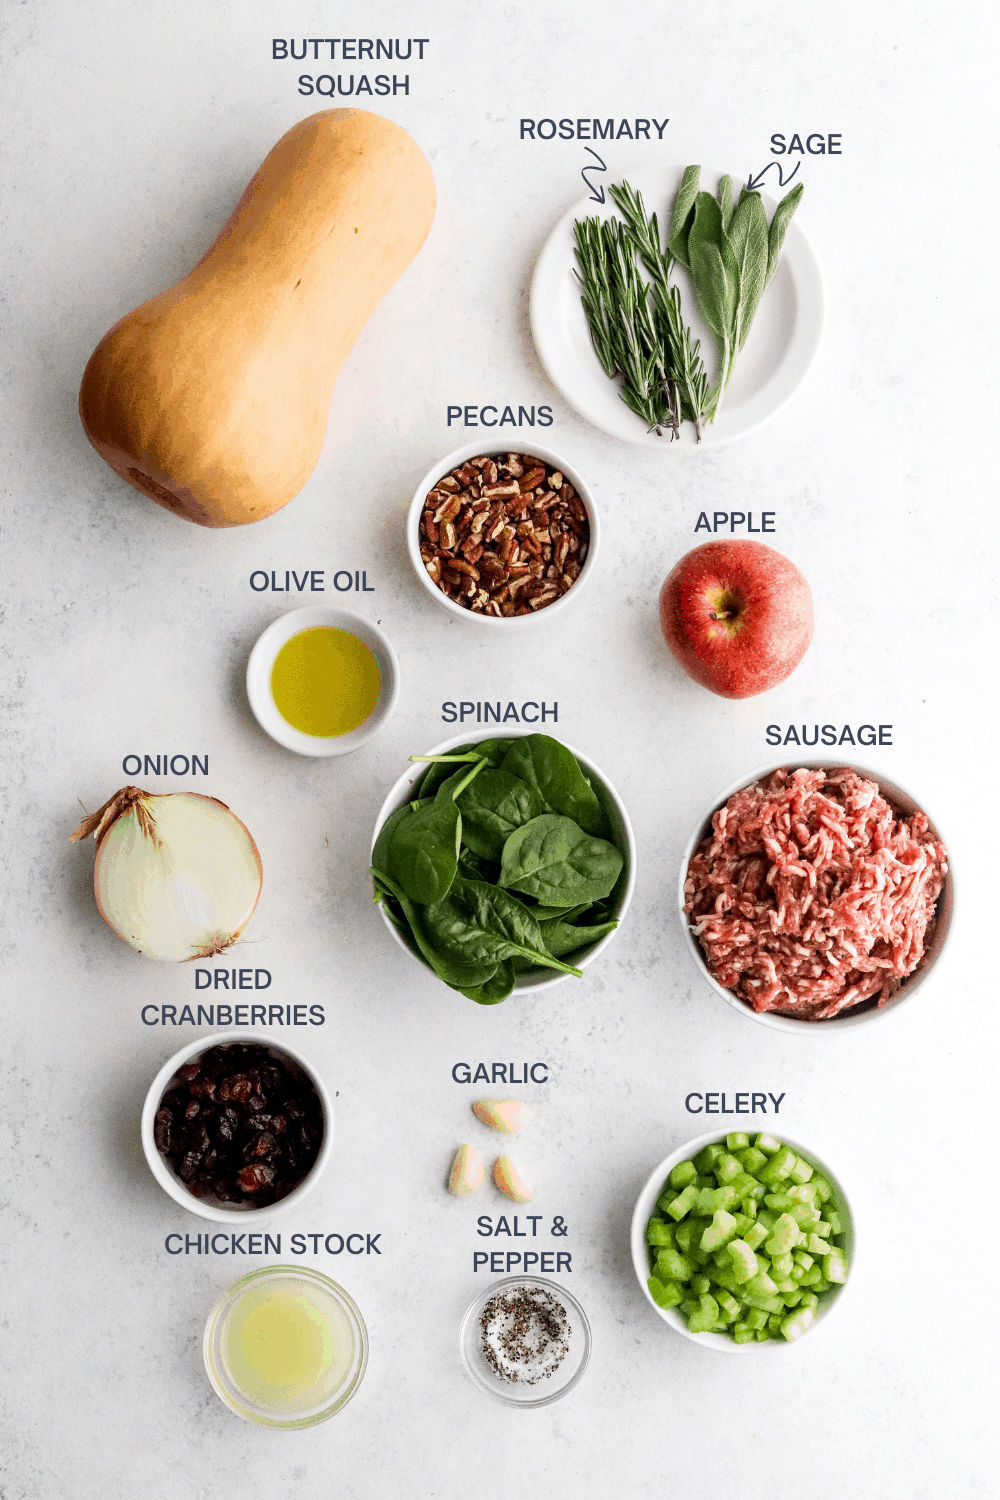 Whole butternut squash with fresh herbs next to it and an apple, bowl of pecans, bowl of olive oil, bowl of spinach, bowl of raw sausage, garlic cloves, bowl if diced celery, bowl if dried cranberries and a bowl of salt and pepper in front of it on a white surface.